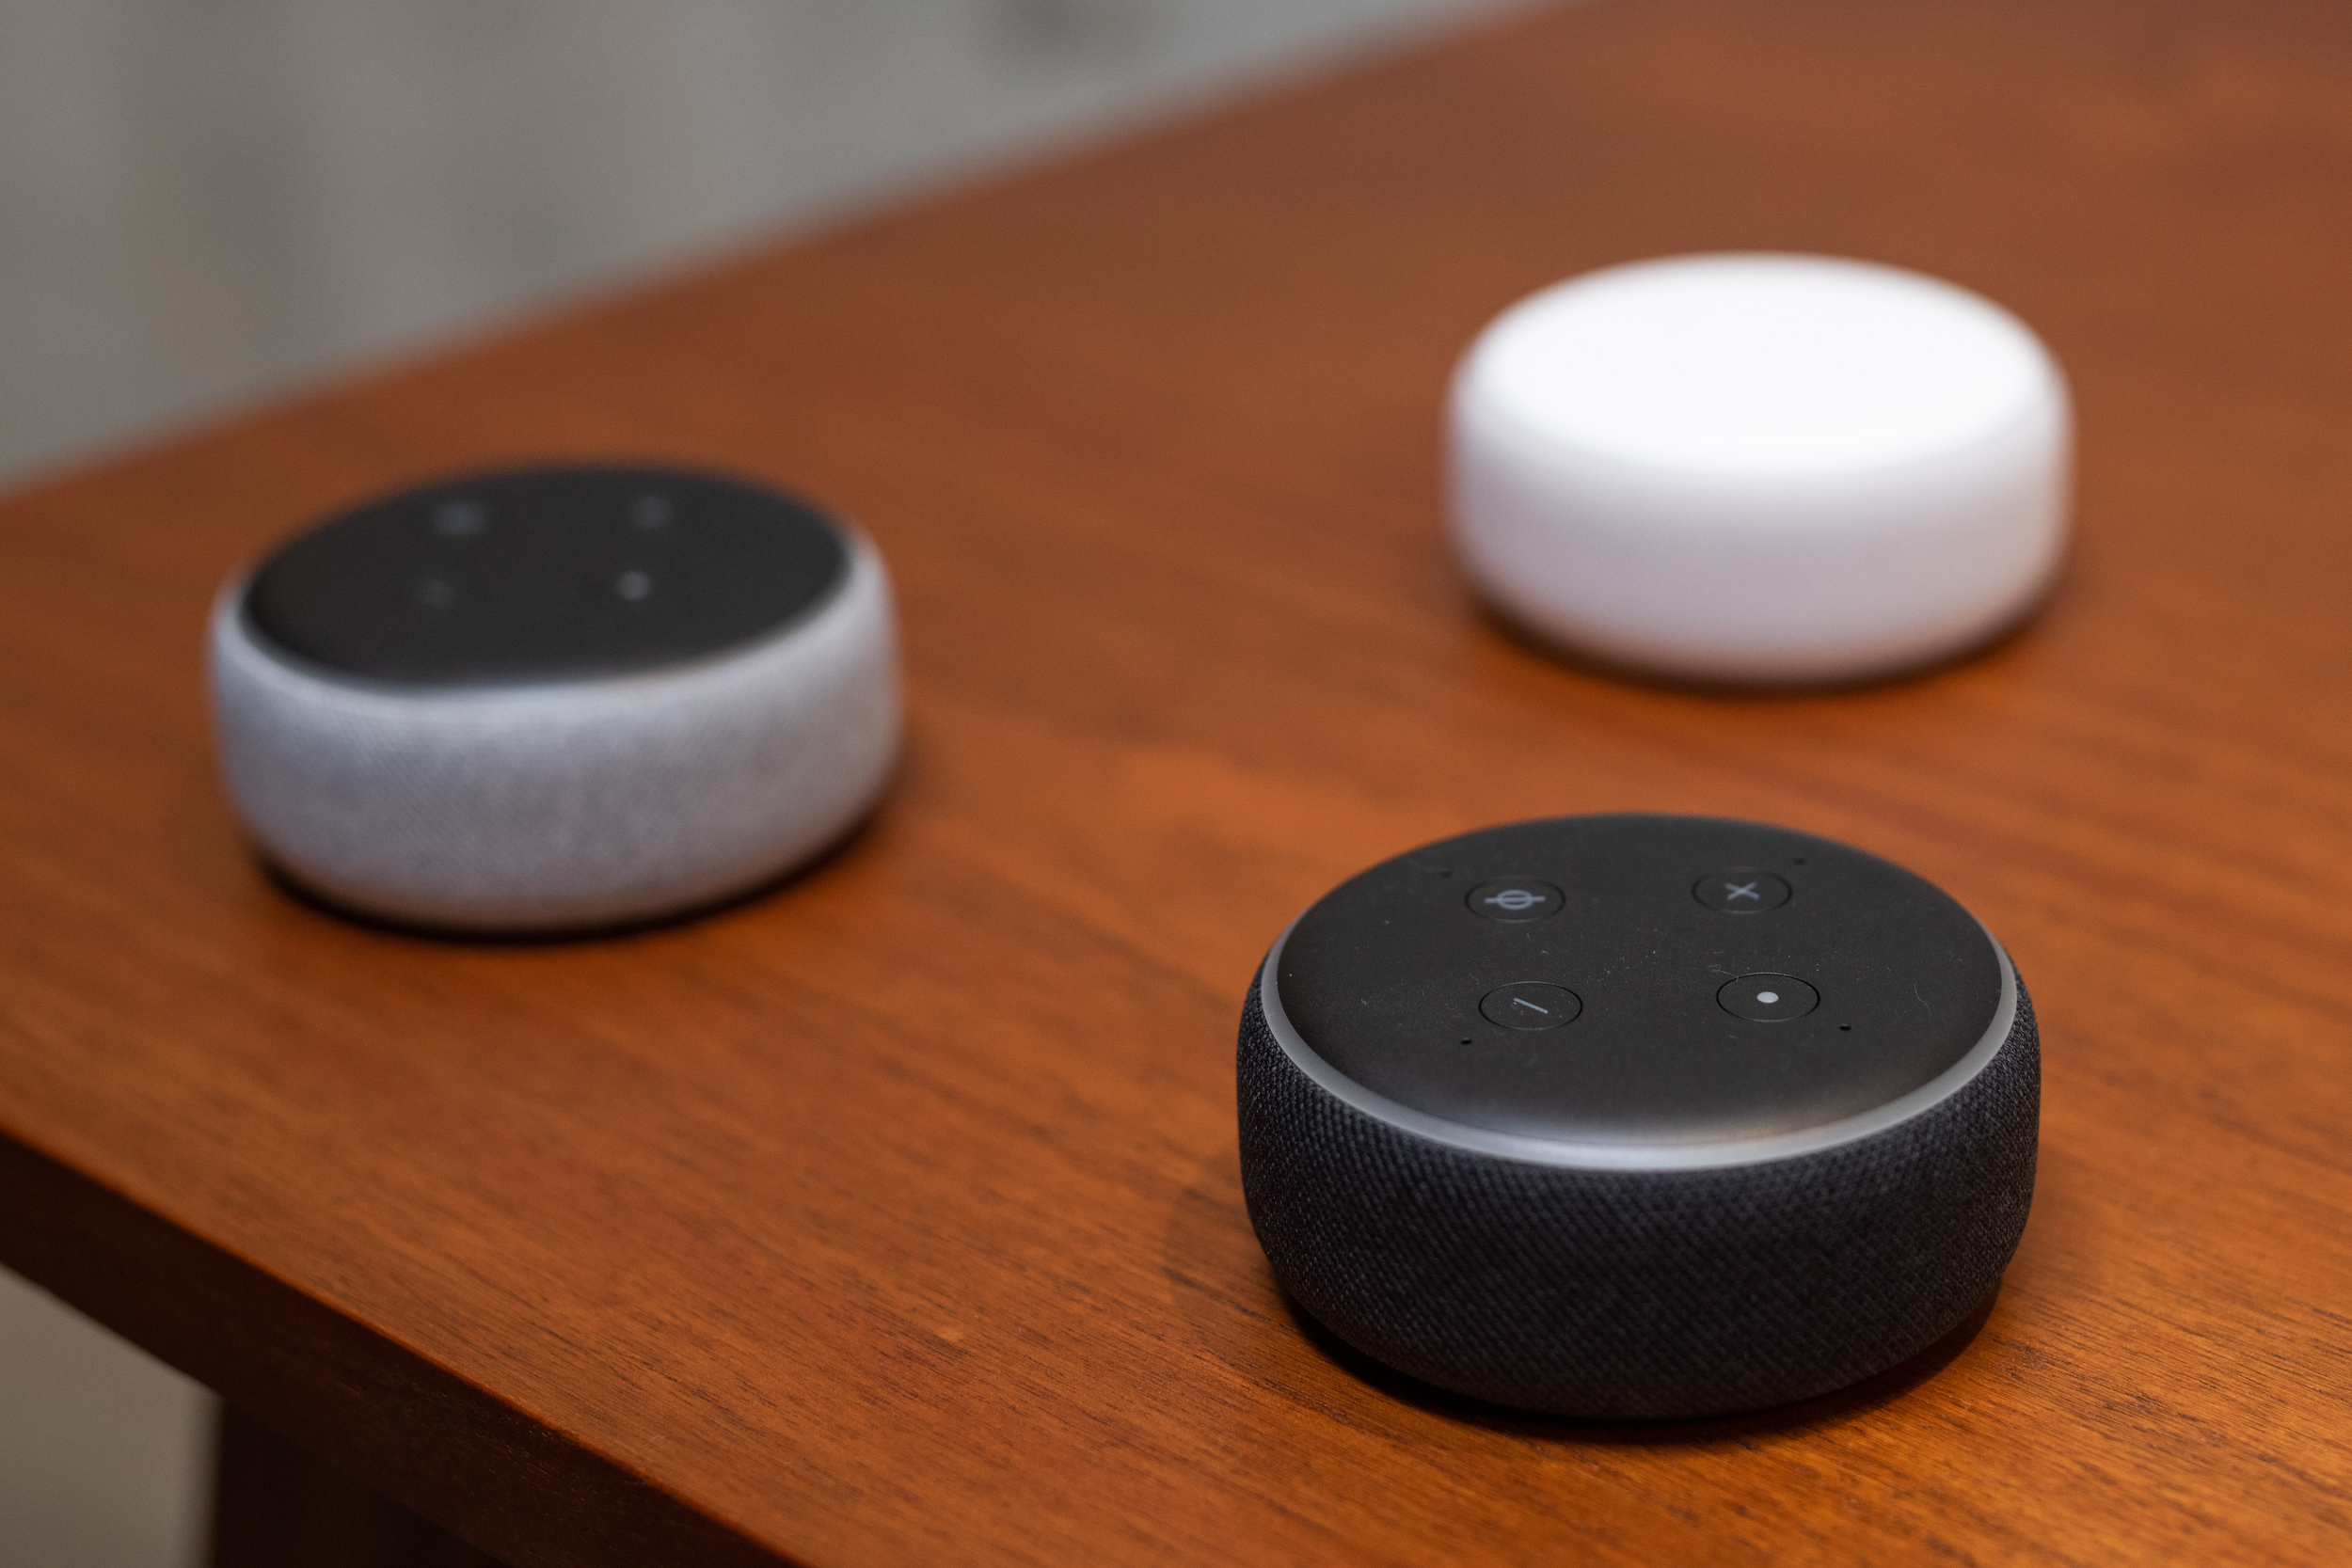 Apple, Amazon, Google partner to make smart home devices more compatible